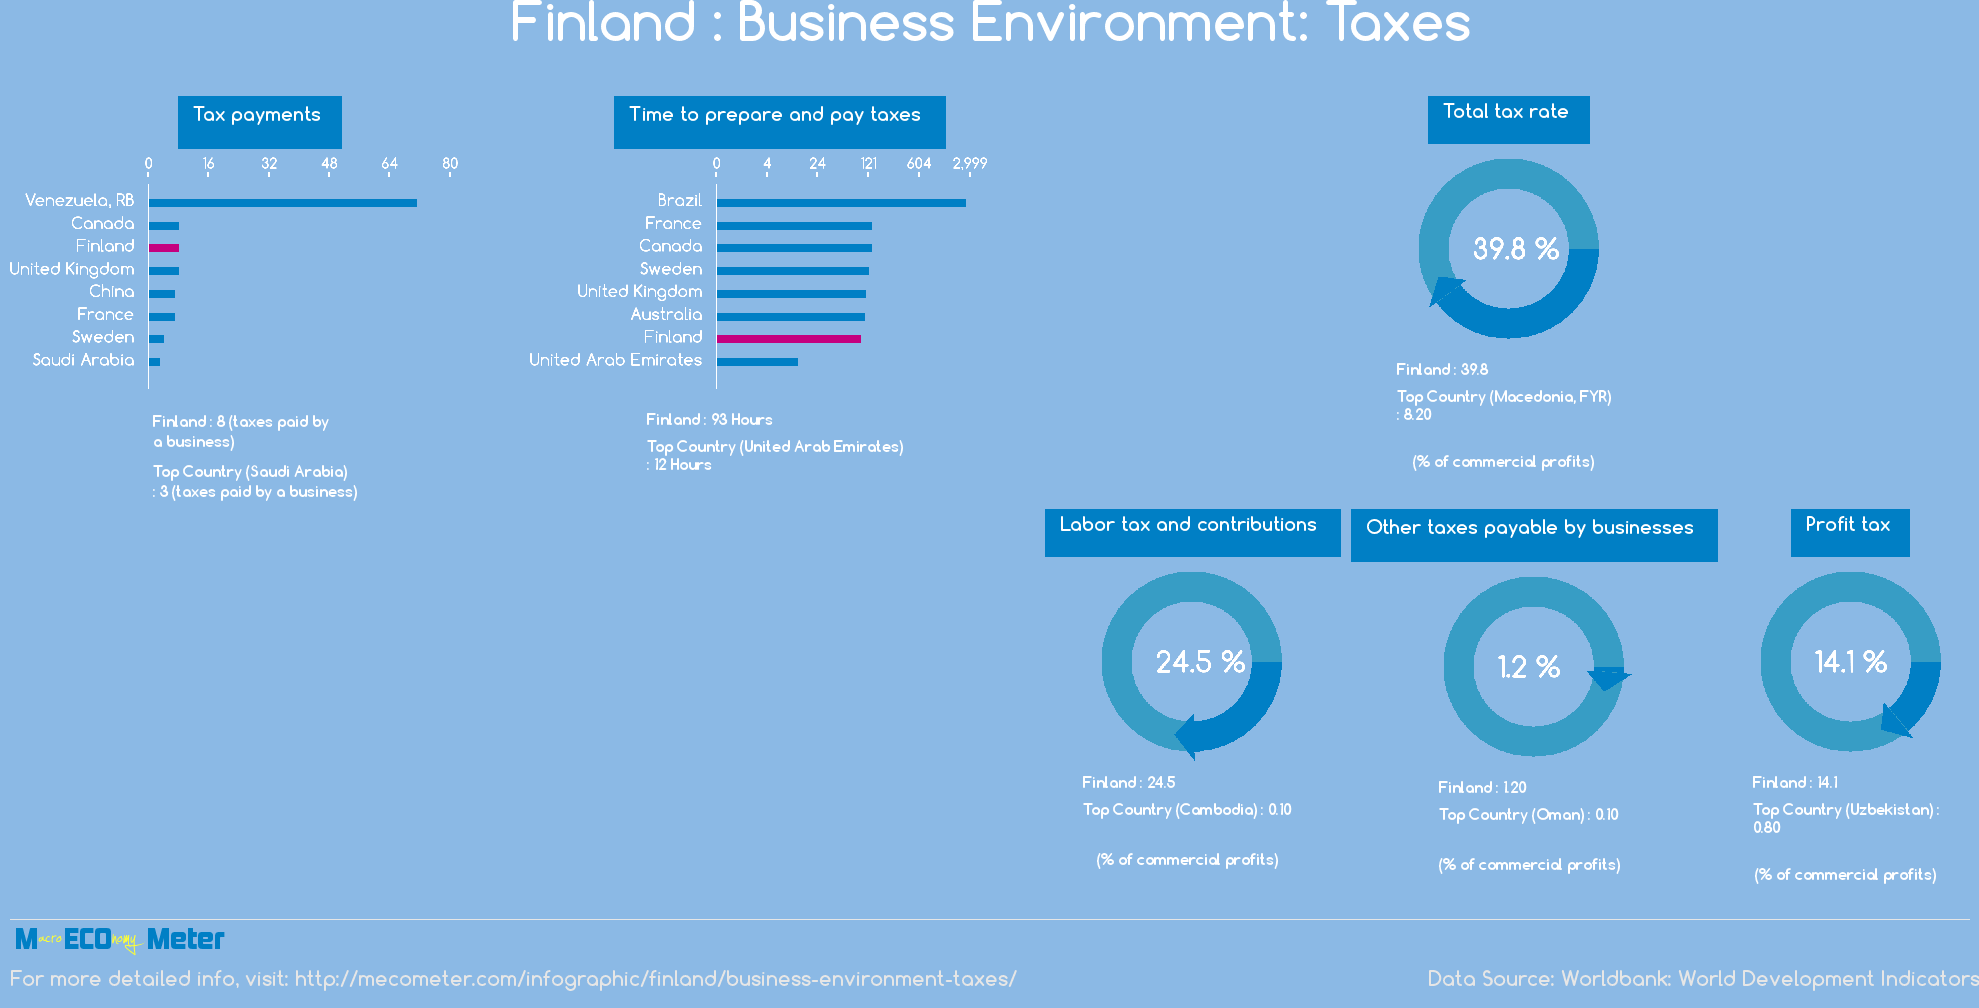 Finland : Business Environment: Taxes